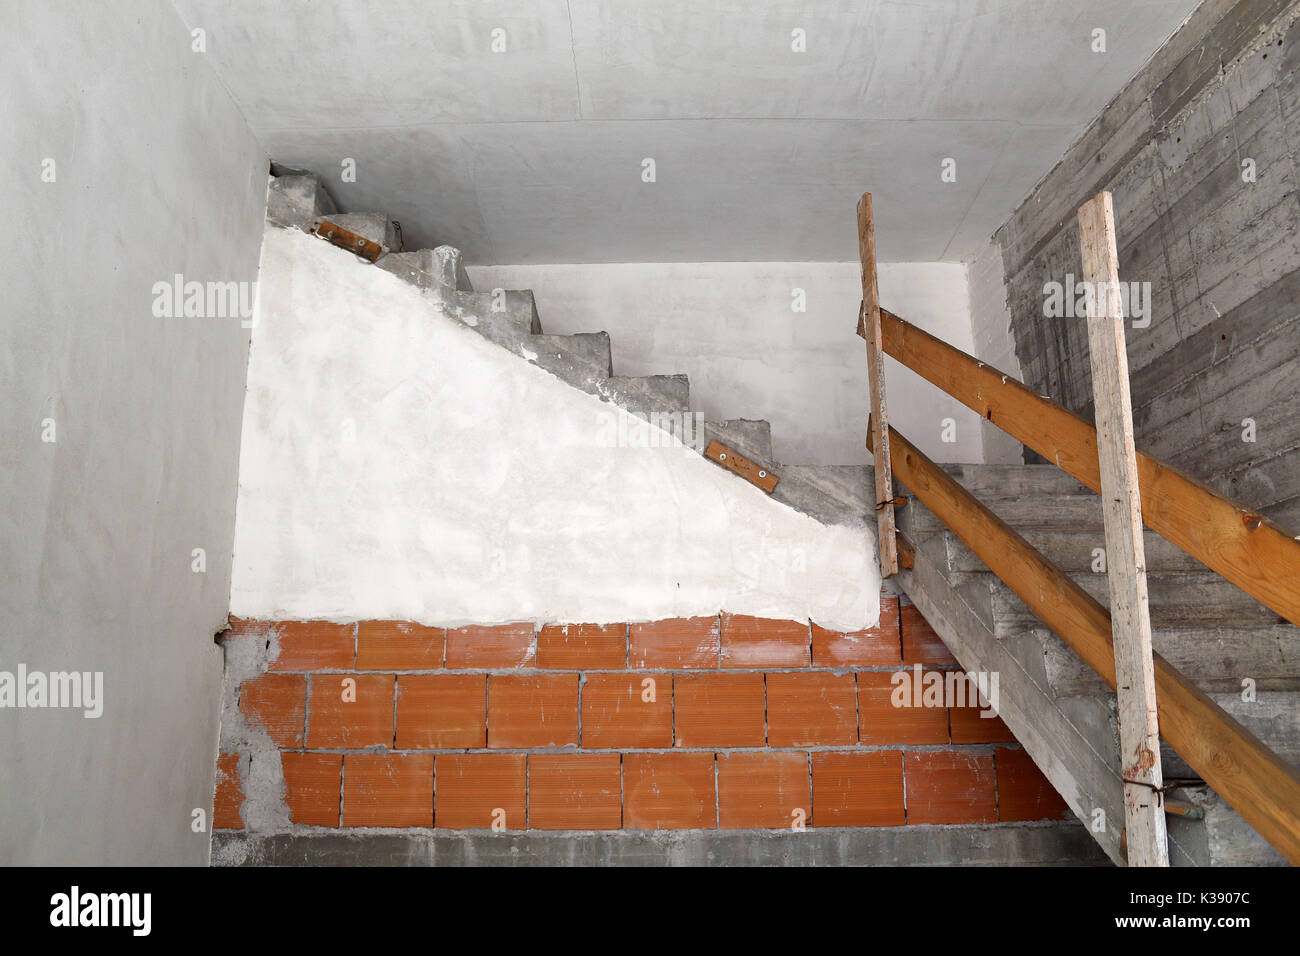 Concrete staircase leading to nowhere. - Stock Image